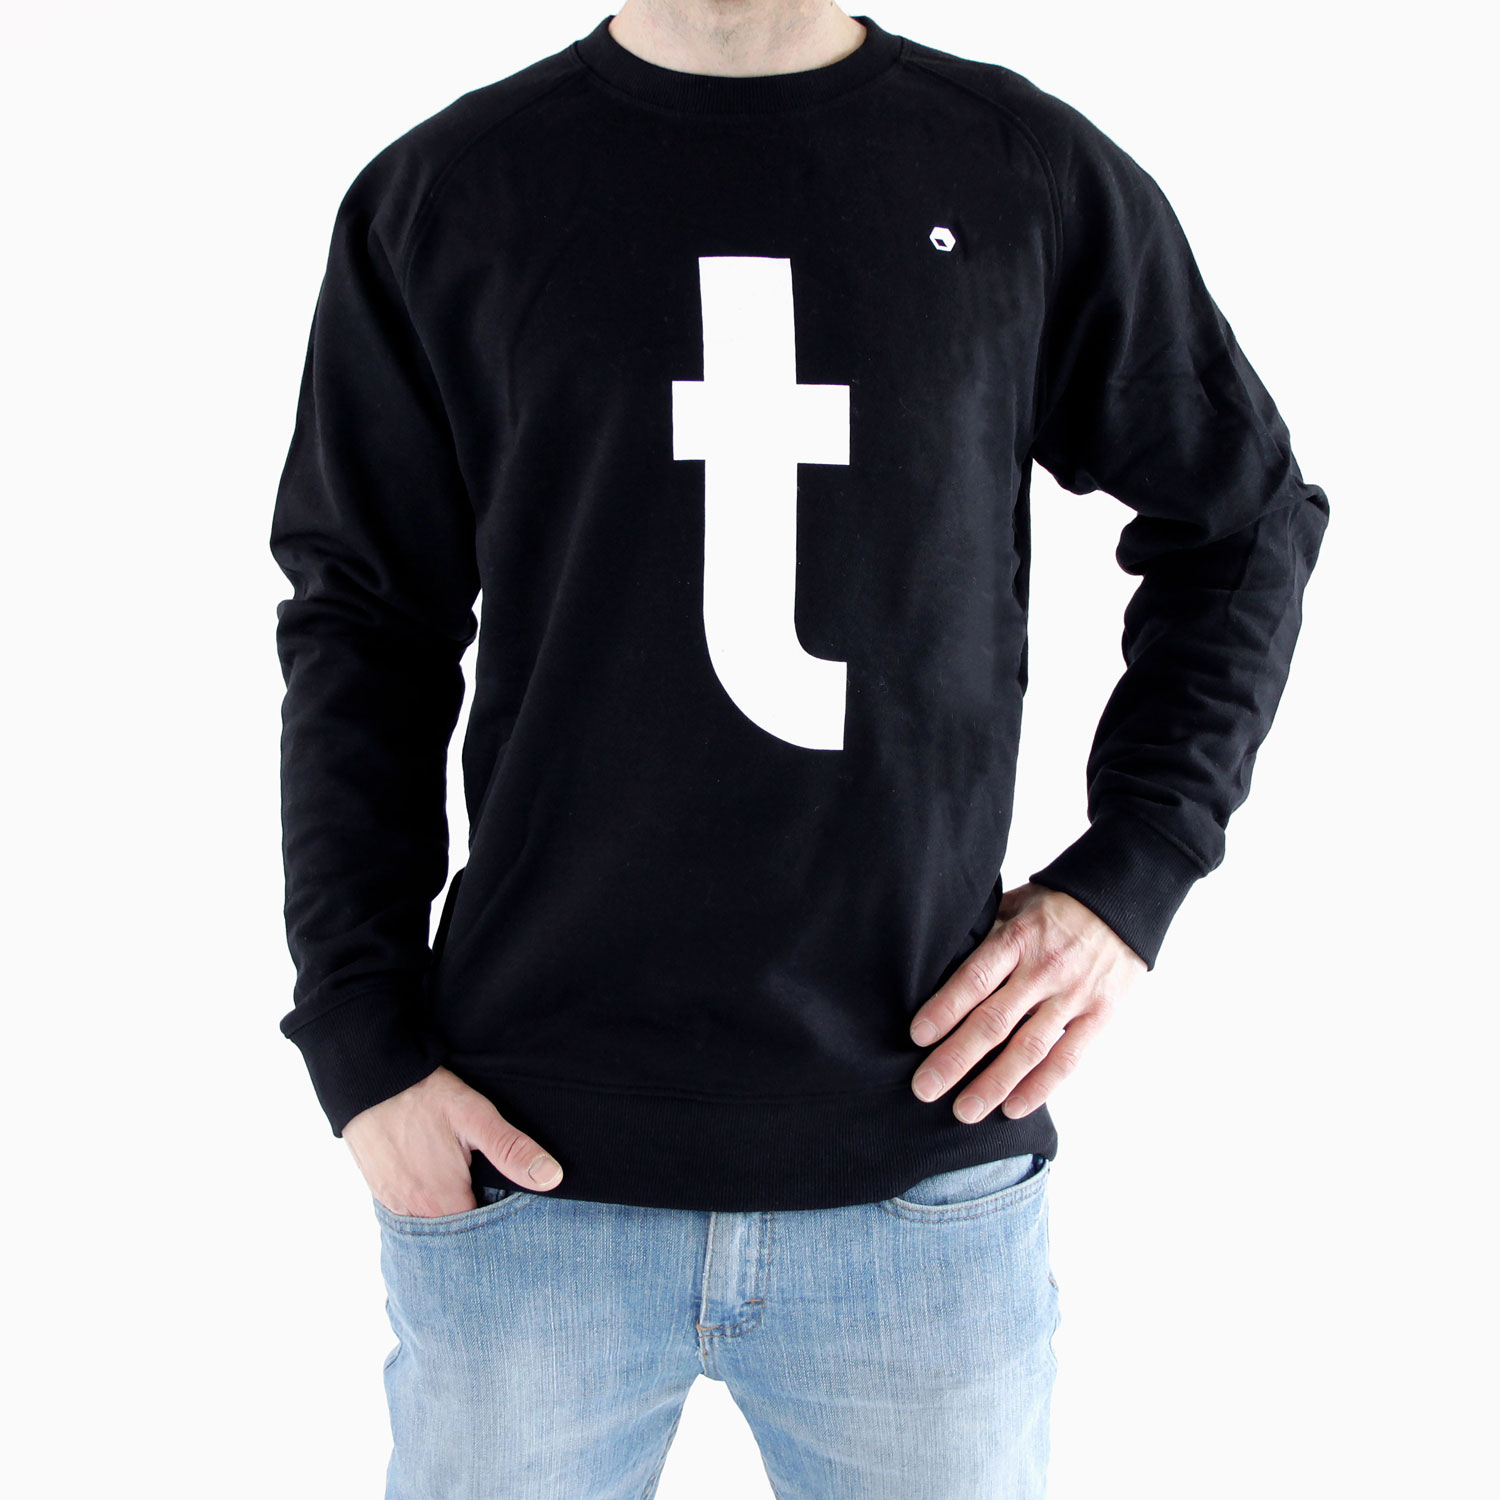 Flathold-apparel-sweat-t-black